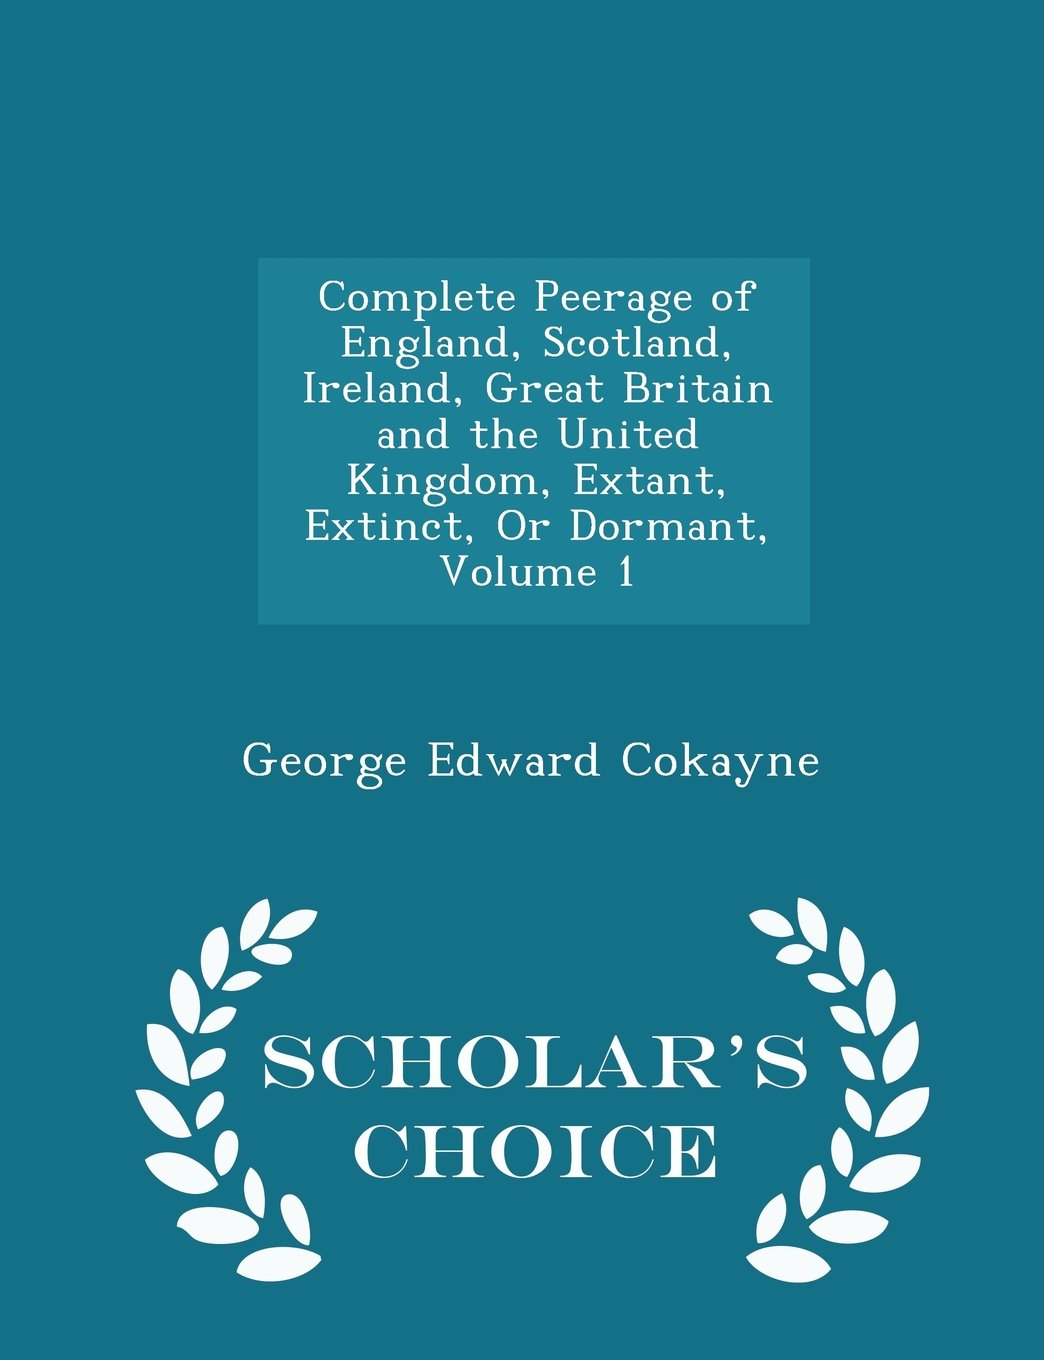 Complete Peerage of England, Scotland, Ireland, Great Britain and the United Kingdom, Extant, Extinct, Or Dormant, Volume 1 - Scholar's Choice Edition